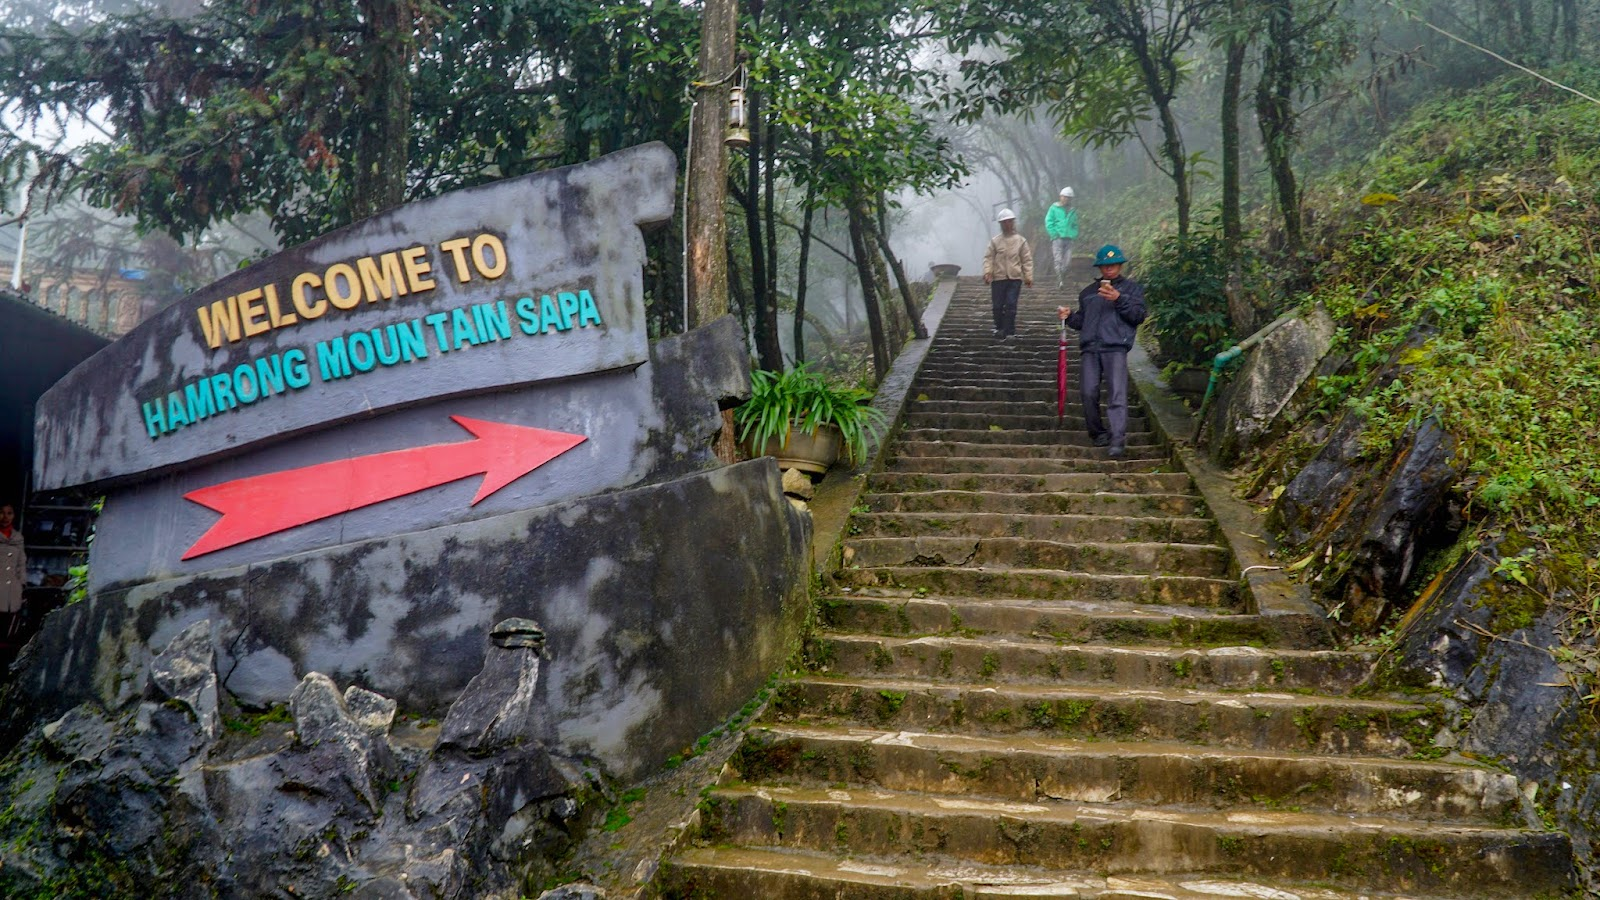 The walk up to the top of Hamrong Mountain. If you are having trouble finding this place, here's a hint. The entrance is behind the Sapa stone church